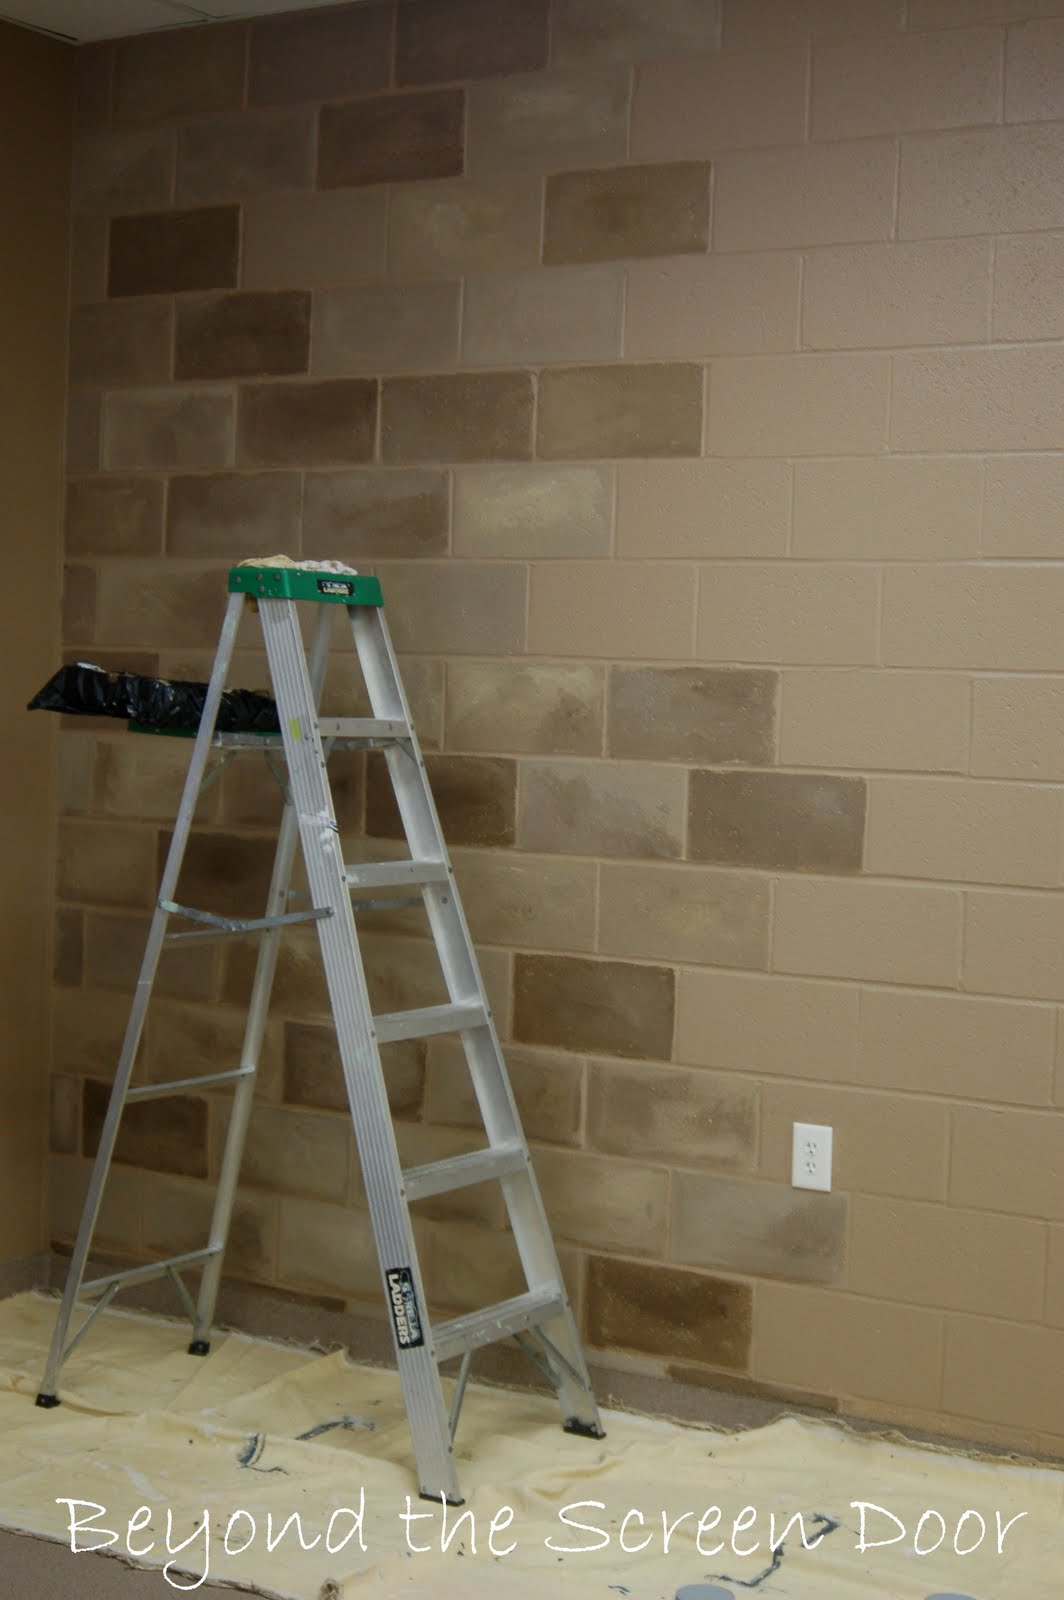 How to paint a concrete wall to look like stone beyond - Concrete block painting ideas ...